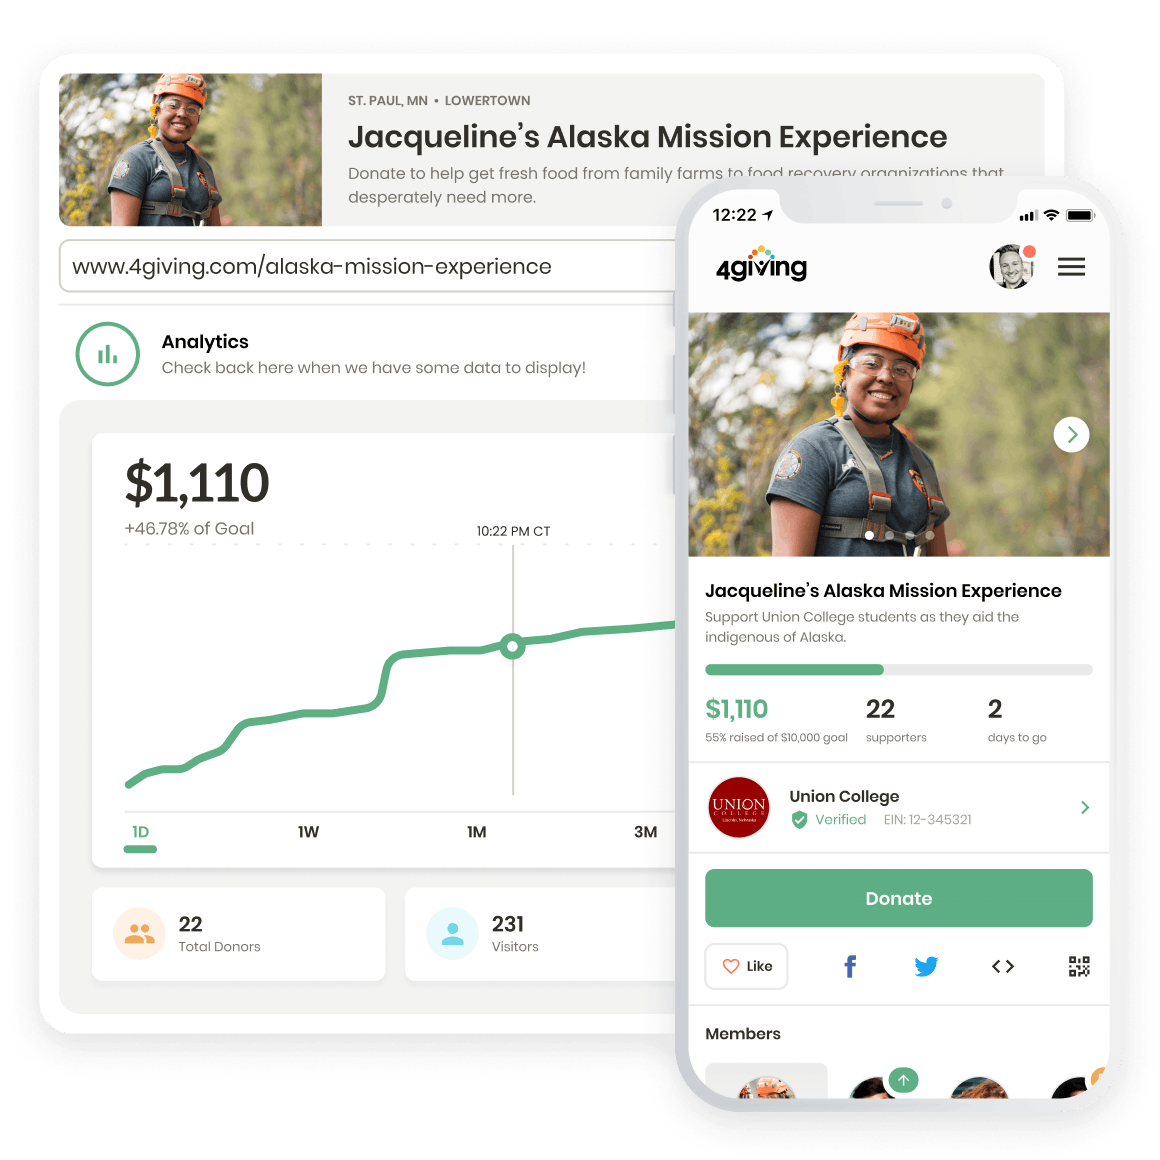 4giving web admin interface displaying donor stats overlaid with 4giving mobile donation page